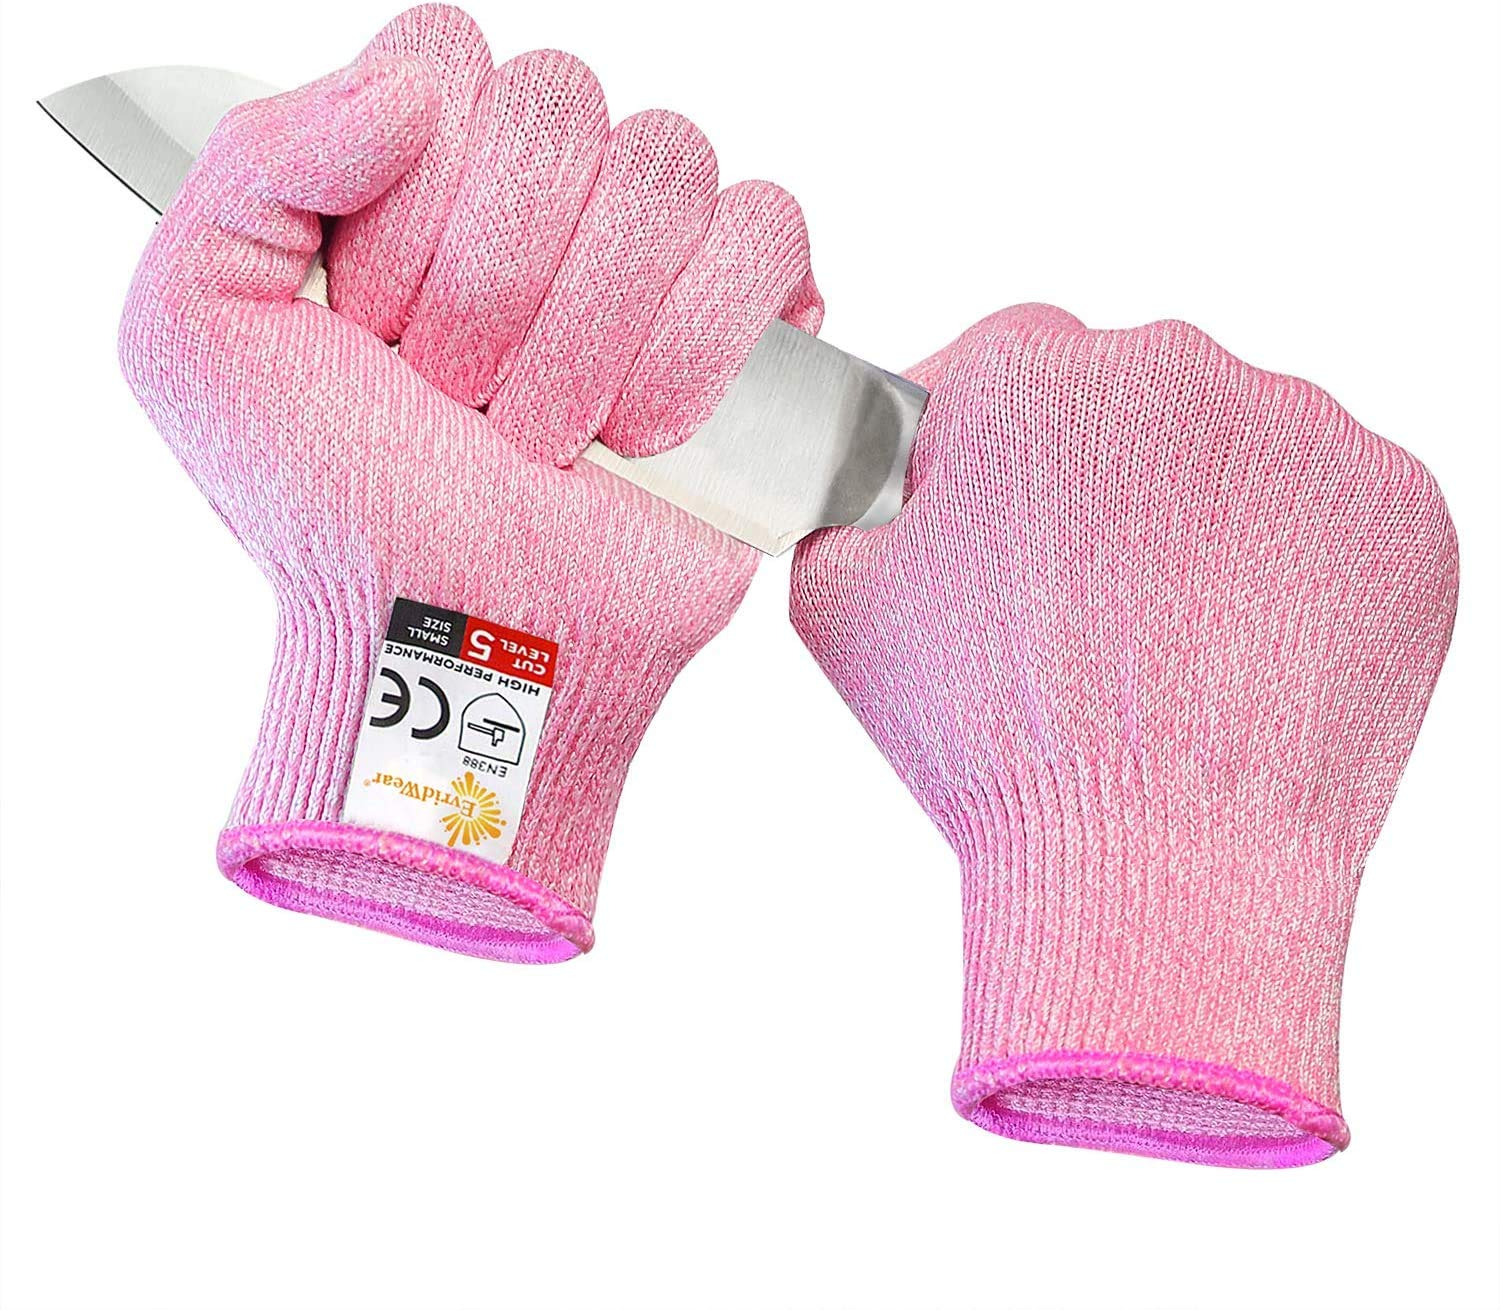 EVRIDWEAR Cut Resistant Gloves, Food Grade Level 5 Safety Protection Kitchen Cut Gloves For cutting, Chopping, Fish Fillet, Mandolin Slicing and Yard-Work Thin & Lightweight (Pink, Medium)